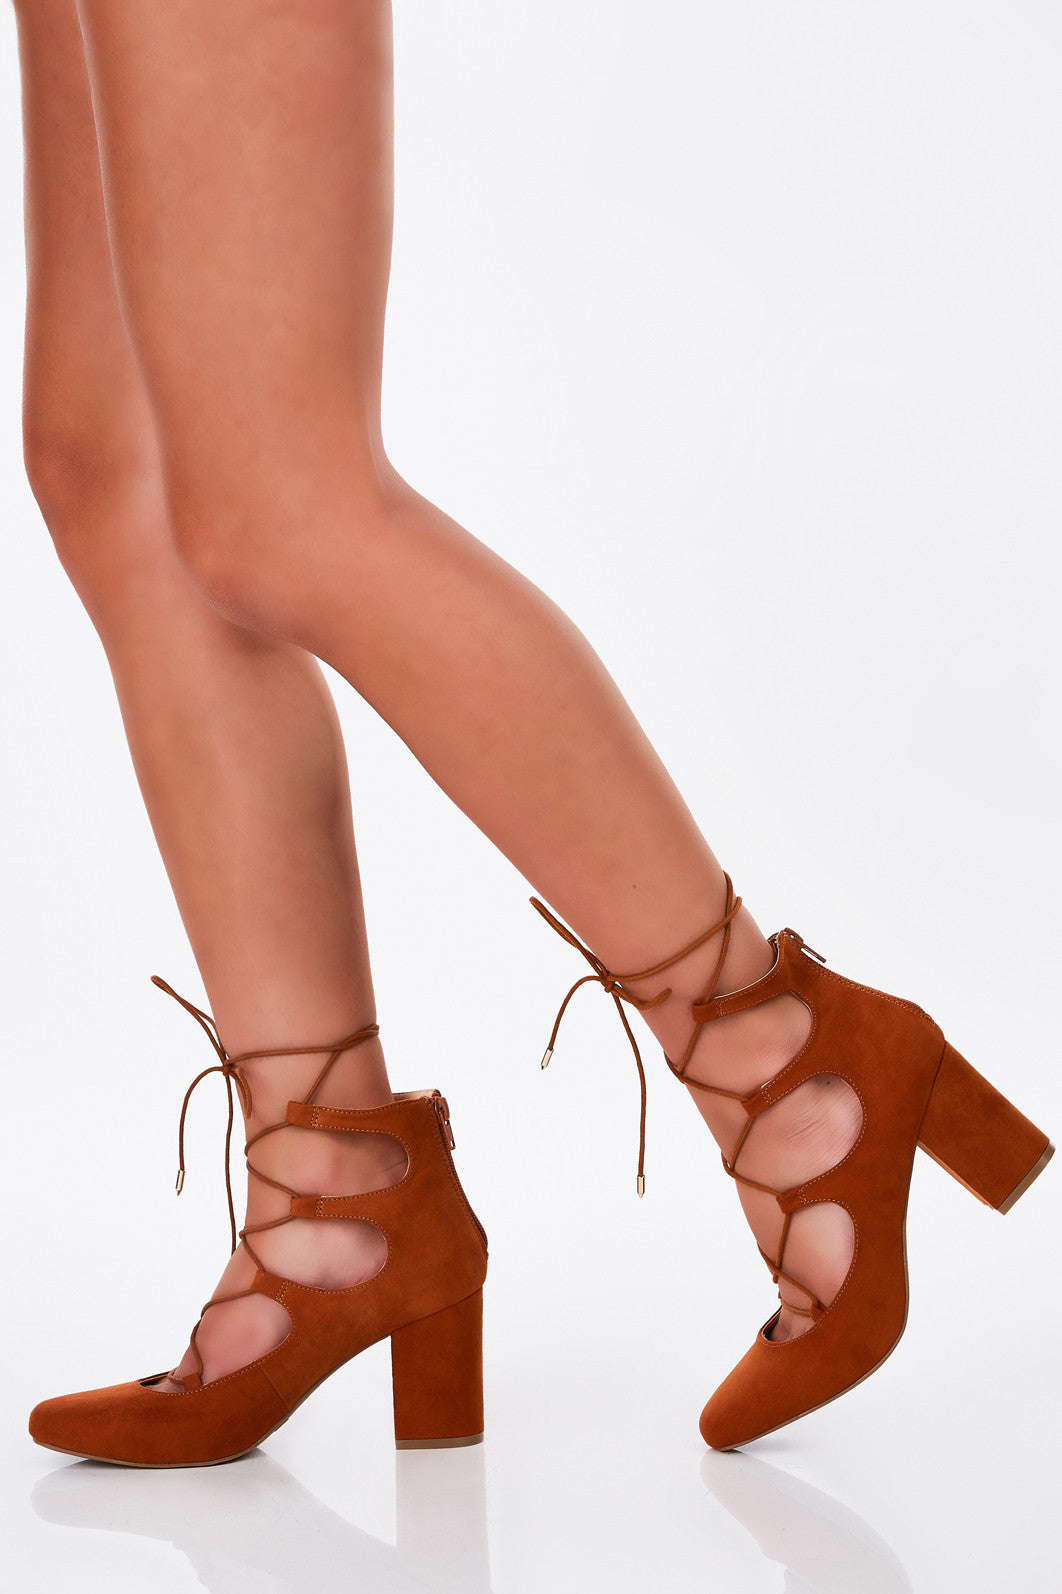 The perfect go-to pair of heels for all the baby dolls out there! Gorgeous lace up detailing with a lovely suede exterior. Block heels for comfortable walking. Rounded toe for a soft, feminine finish with easy zip closure. Perfect to pair with A-line dresses!